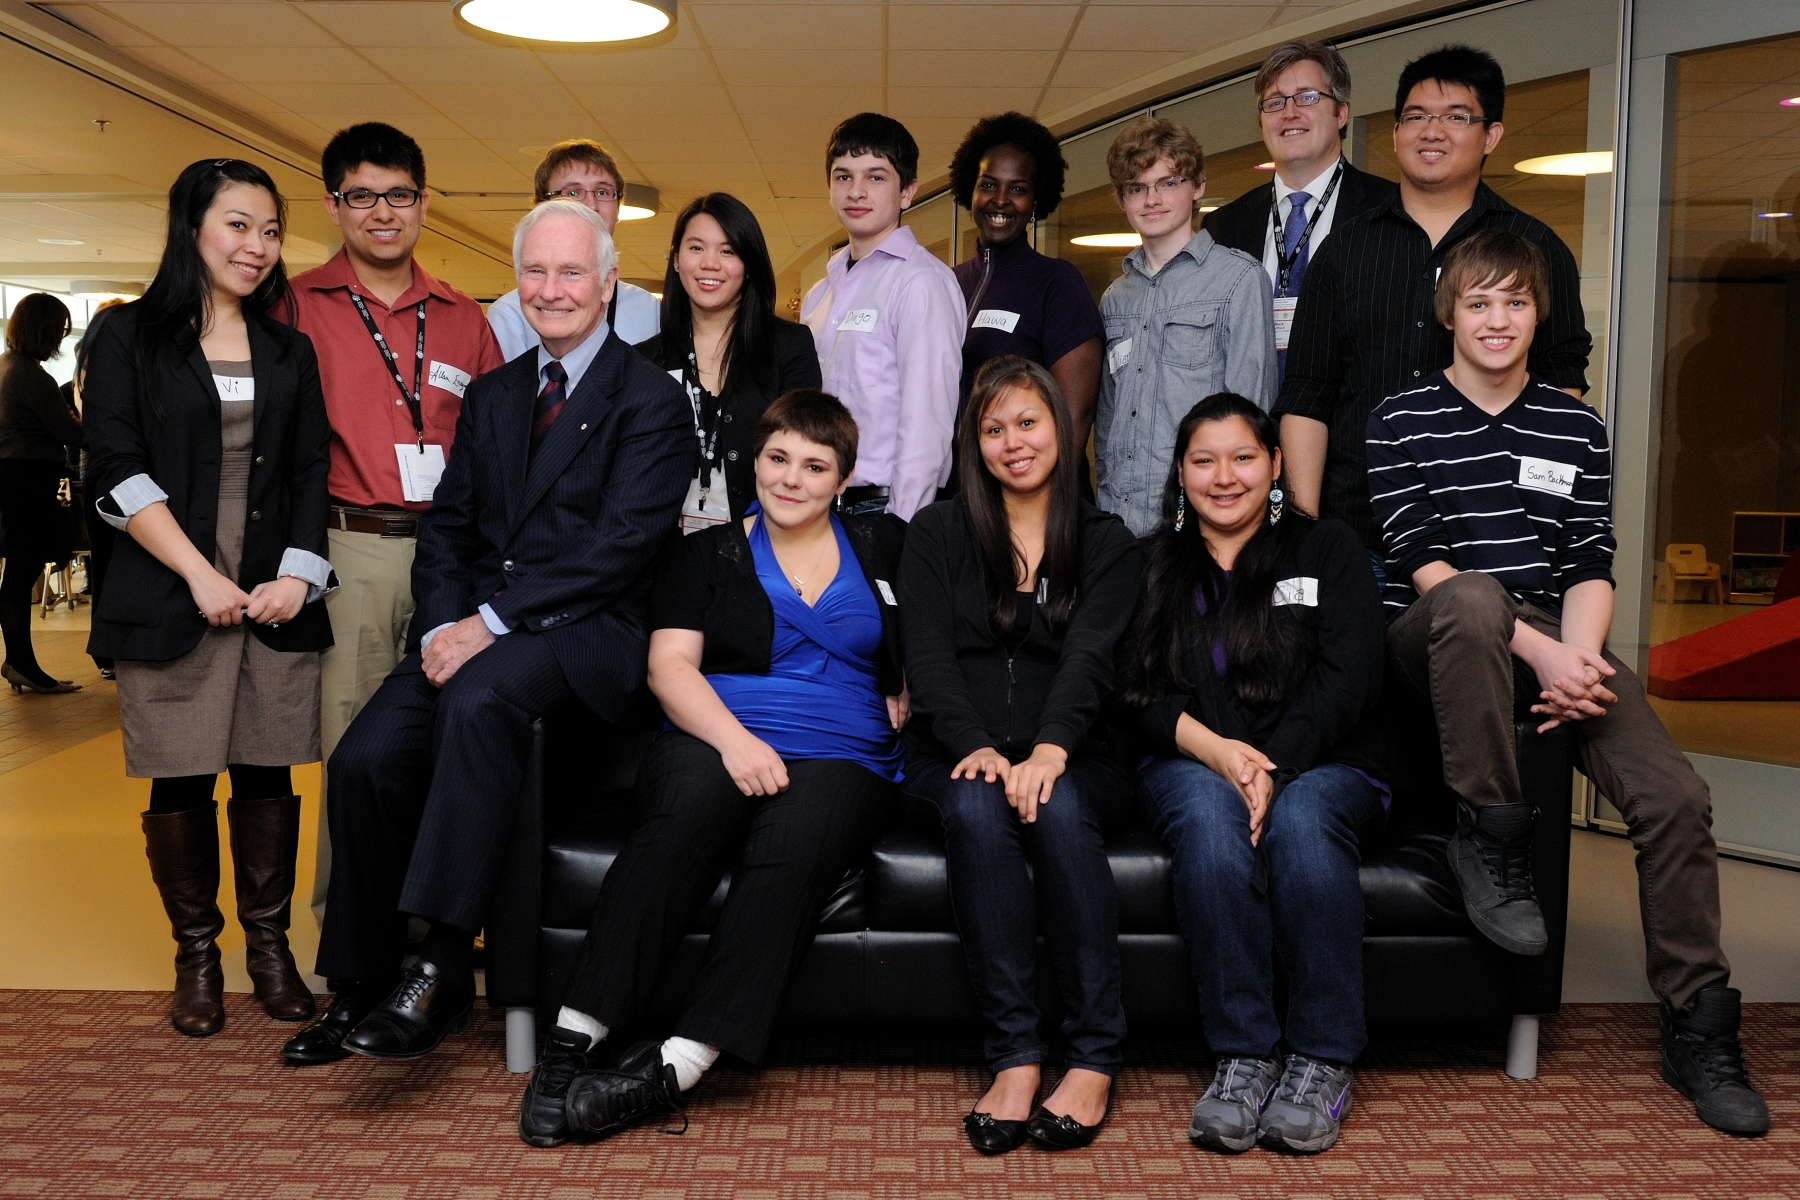 Official photo of His Excellency with participants from the Vancouver Foundation's Youth Philanthropy Council and young people from across Canada.